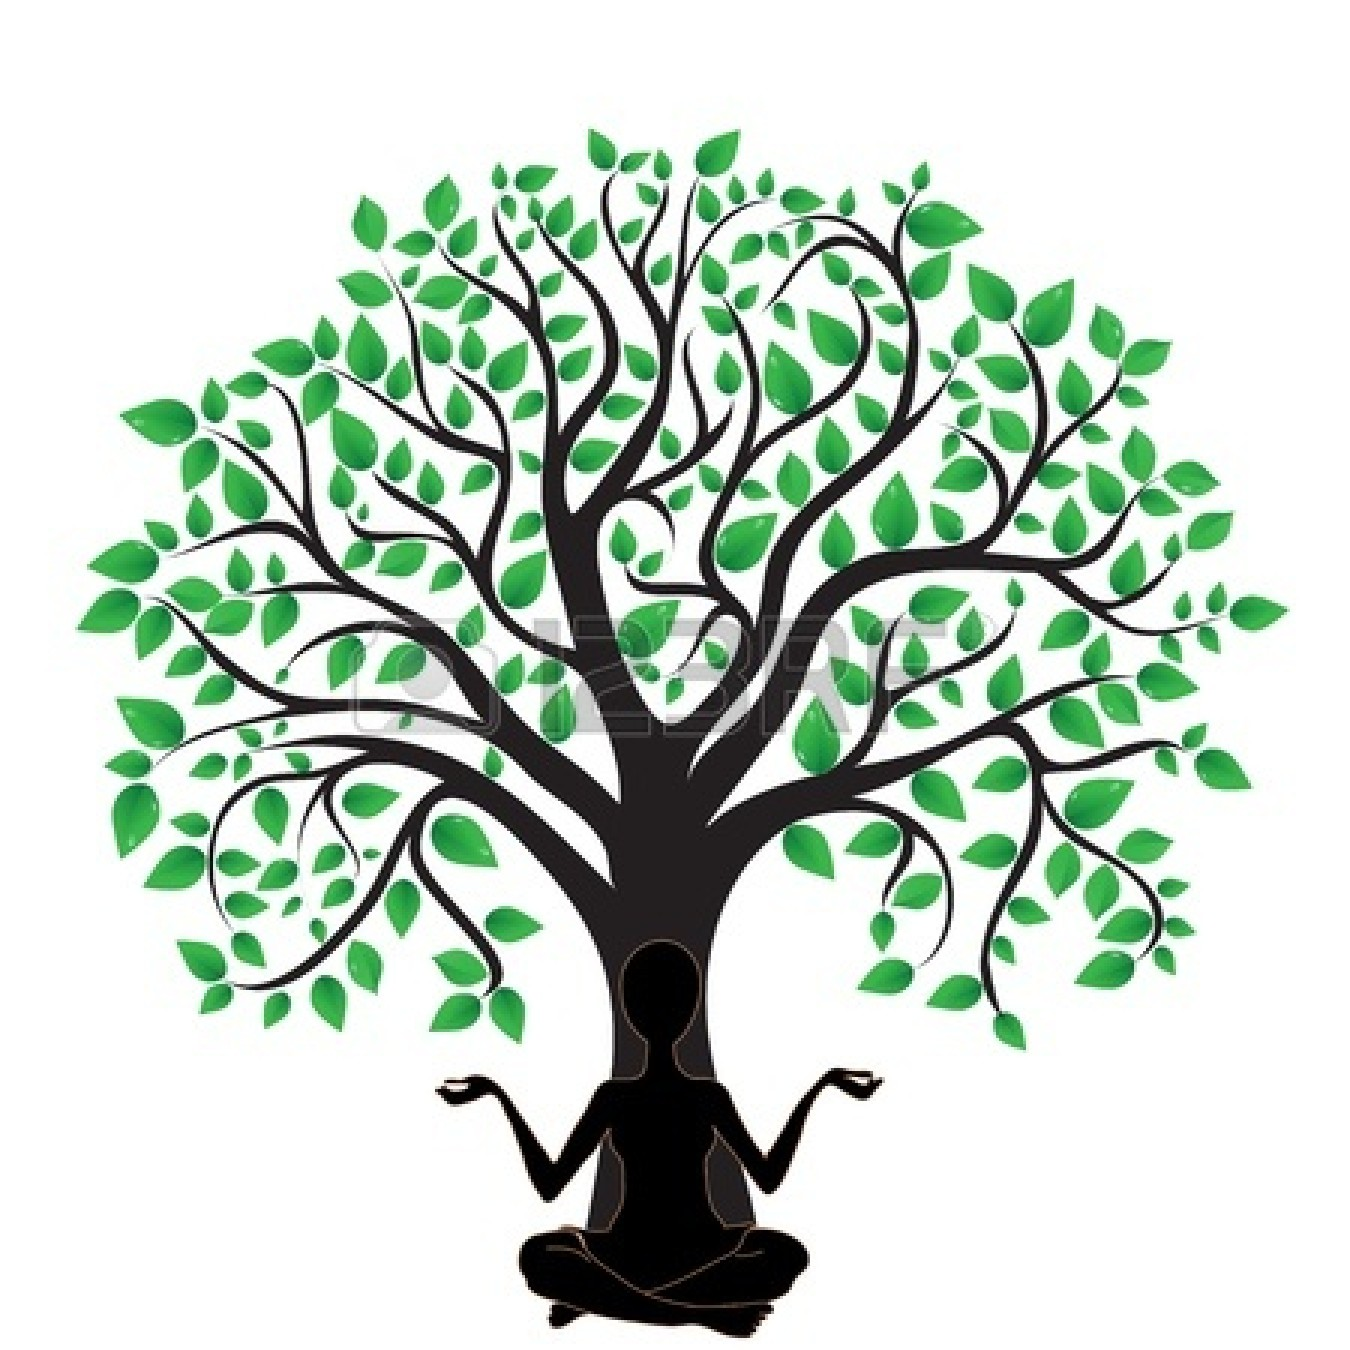 large tree silhouette at getdrawings com free for personal use rh getdrawings com Oak Tree with Swing Graphic oak tree graphics free